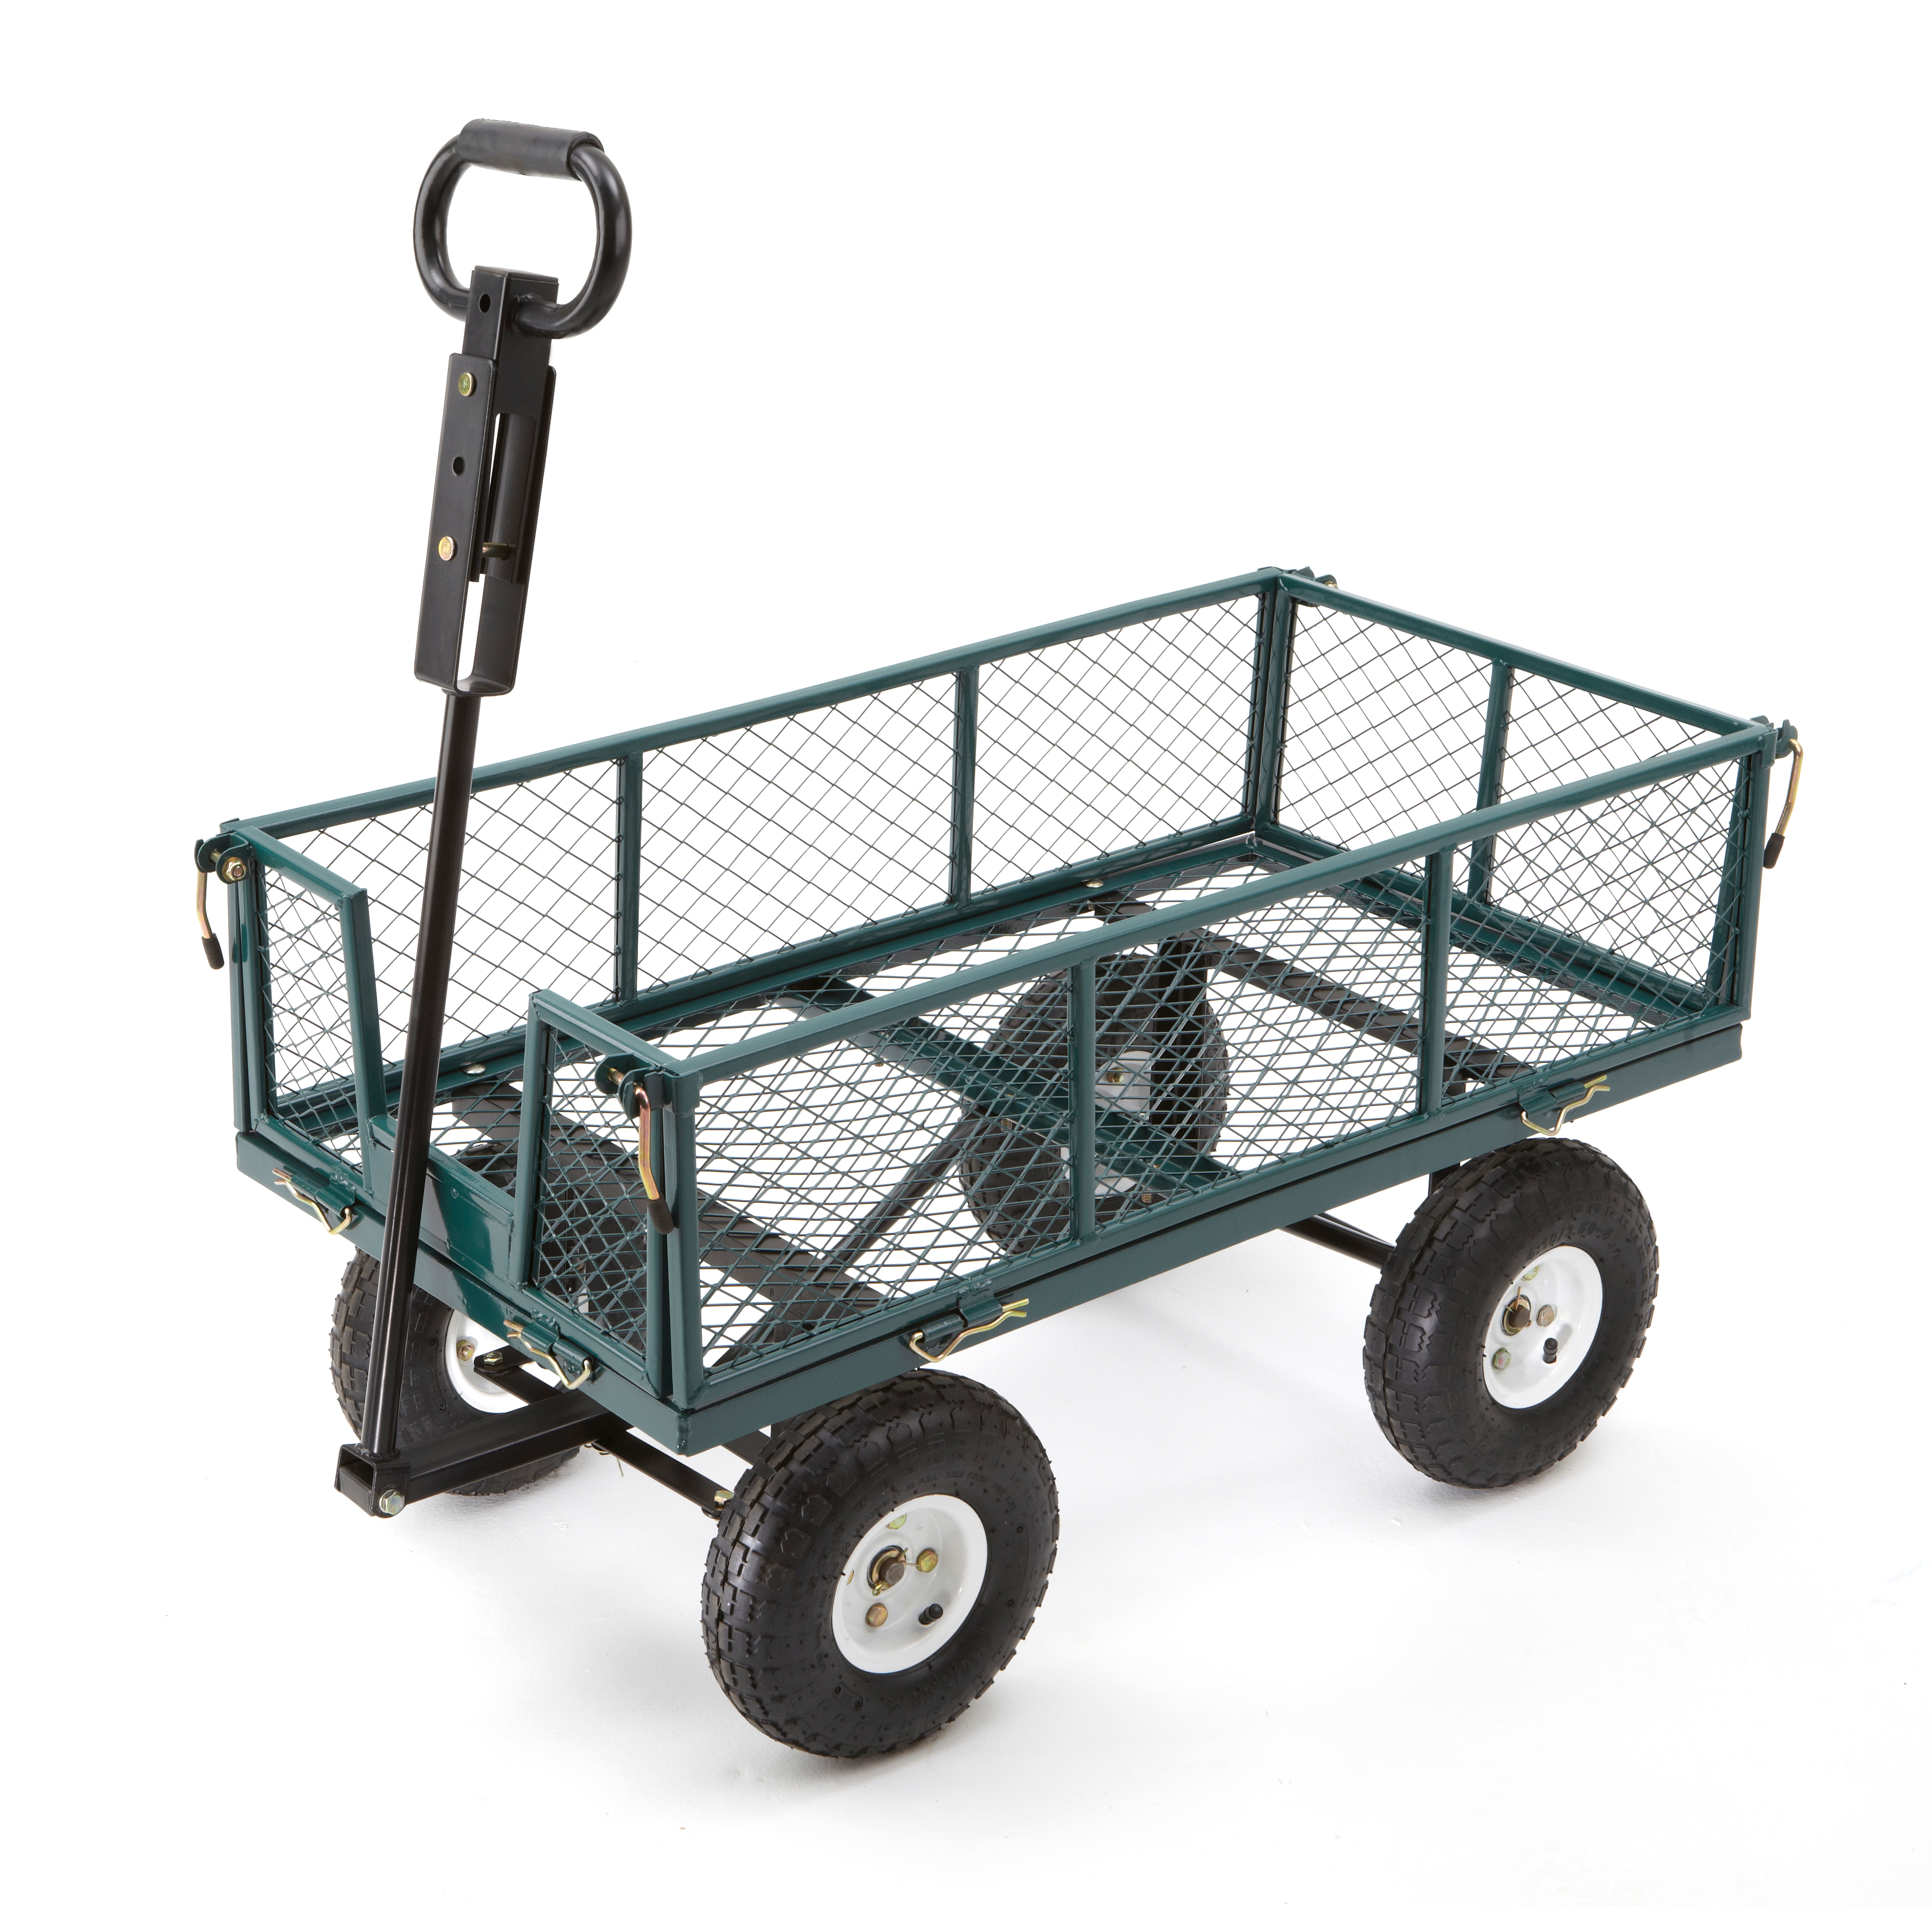 garden cart gorilla 2-in-1 utility cart LJDMCXI